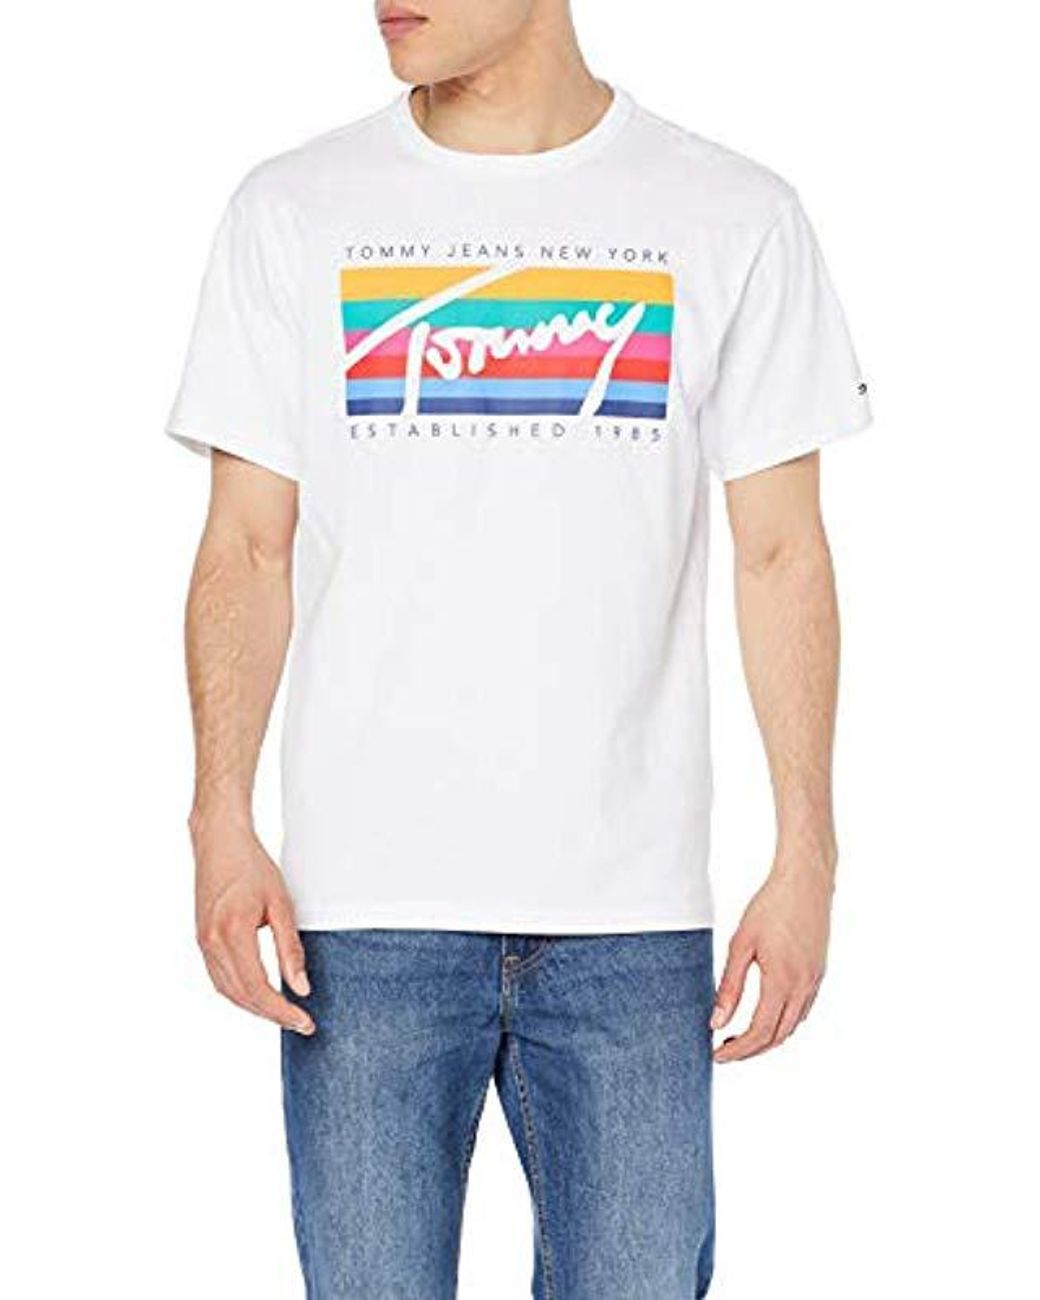 a4ad97e4 Tommy Hilfiger Tjm Tommy Rainbow Box Tee T-shirt in White for Men - Lyst